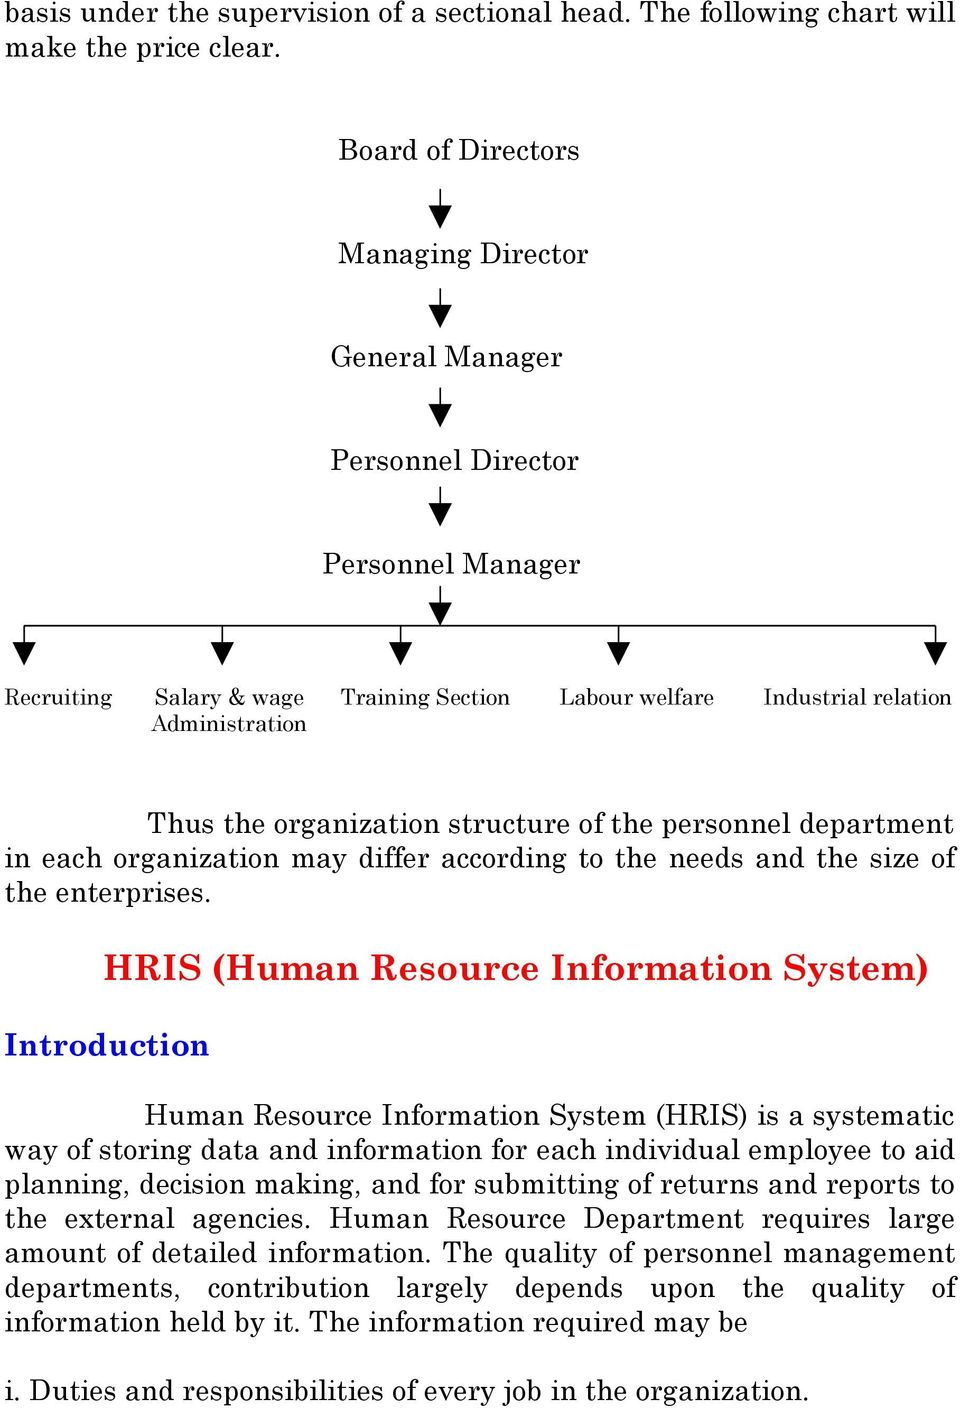 organization structure of the personnel department in each organization may differ according to the needs and the size of the enterprises.